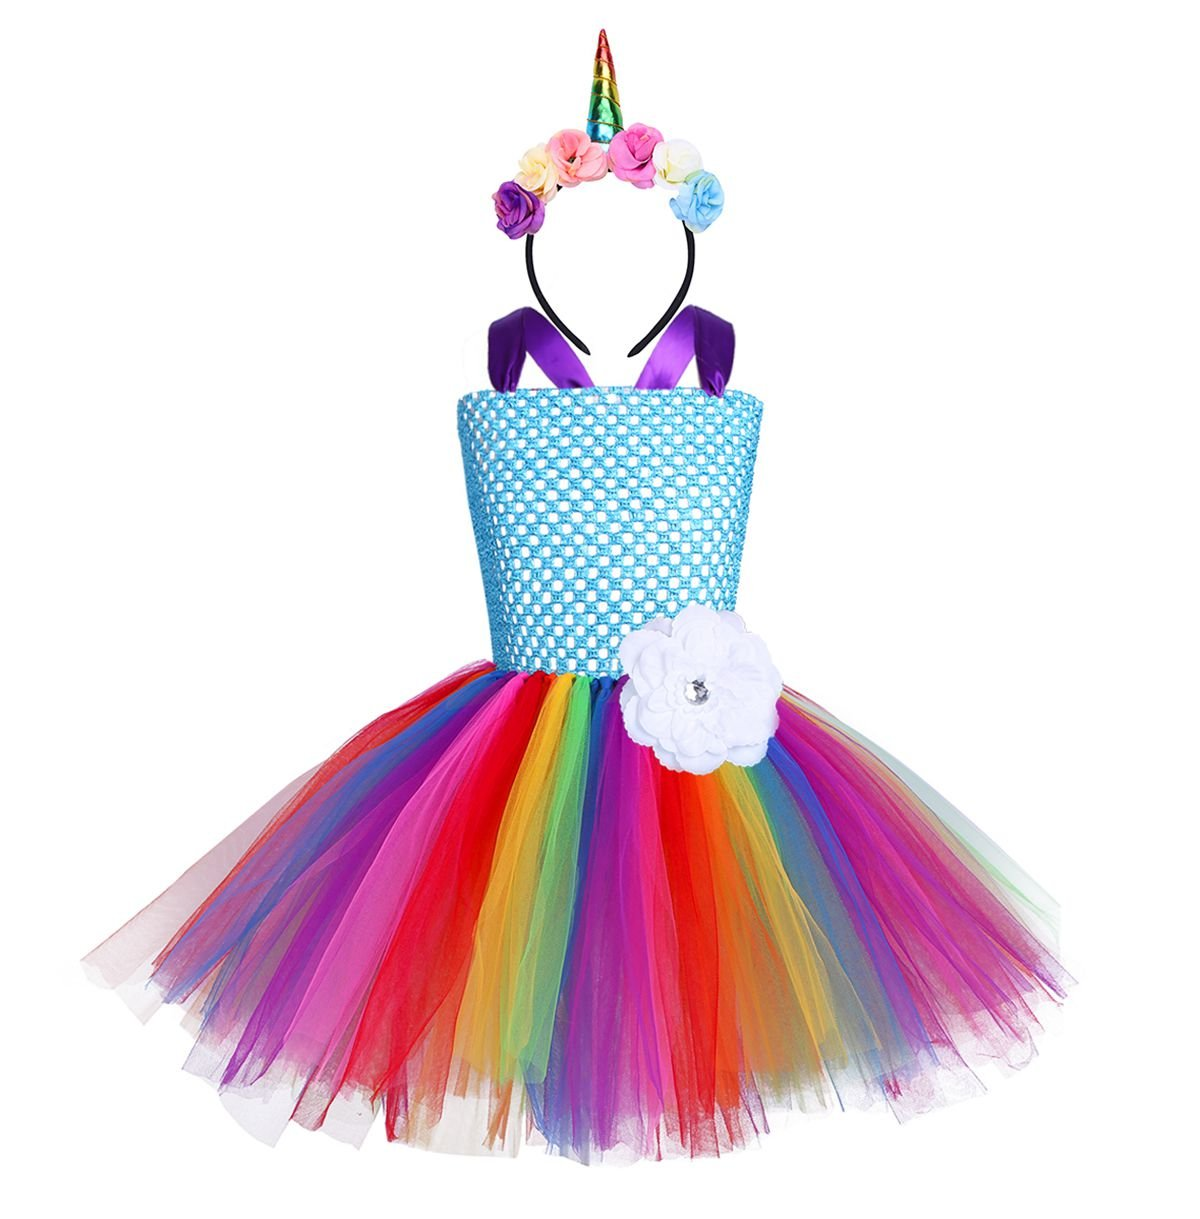 CHICTRY Girls Kids Colorful Birthday Costumes Holiday Mythical Tutus Outfit Dress Ballet with Headband Set Blue 7-8